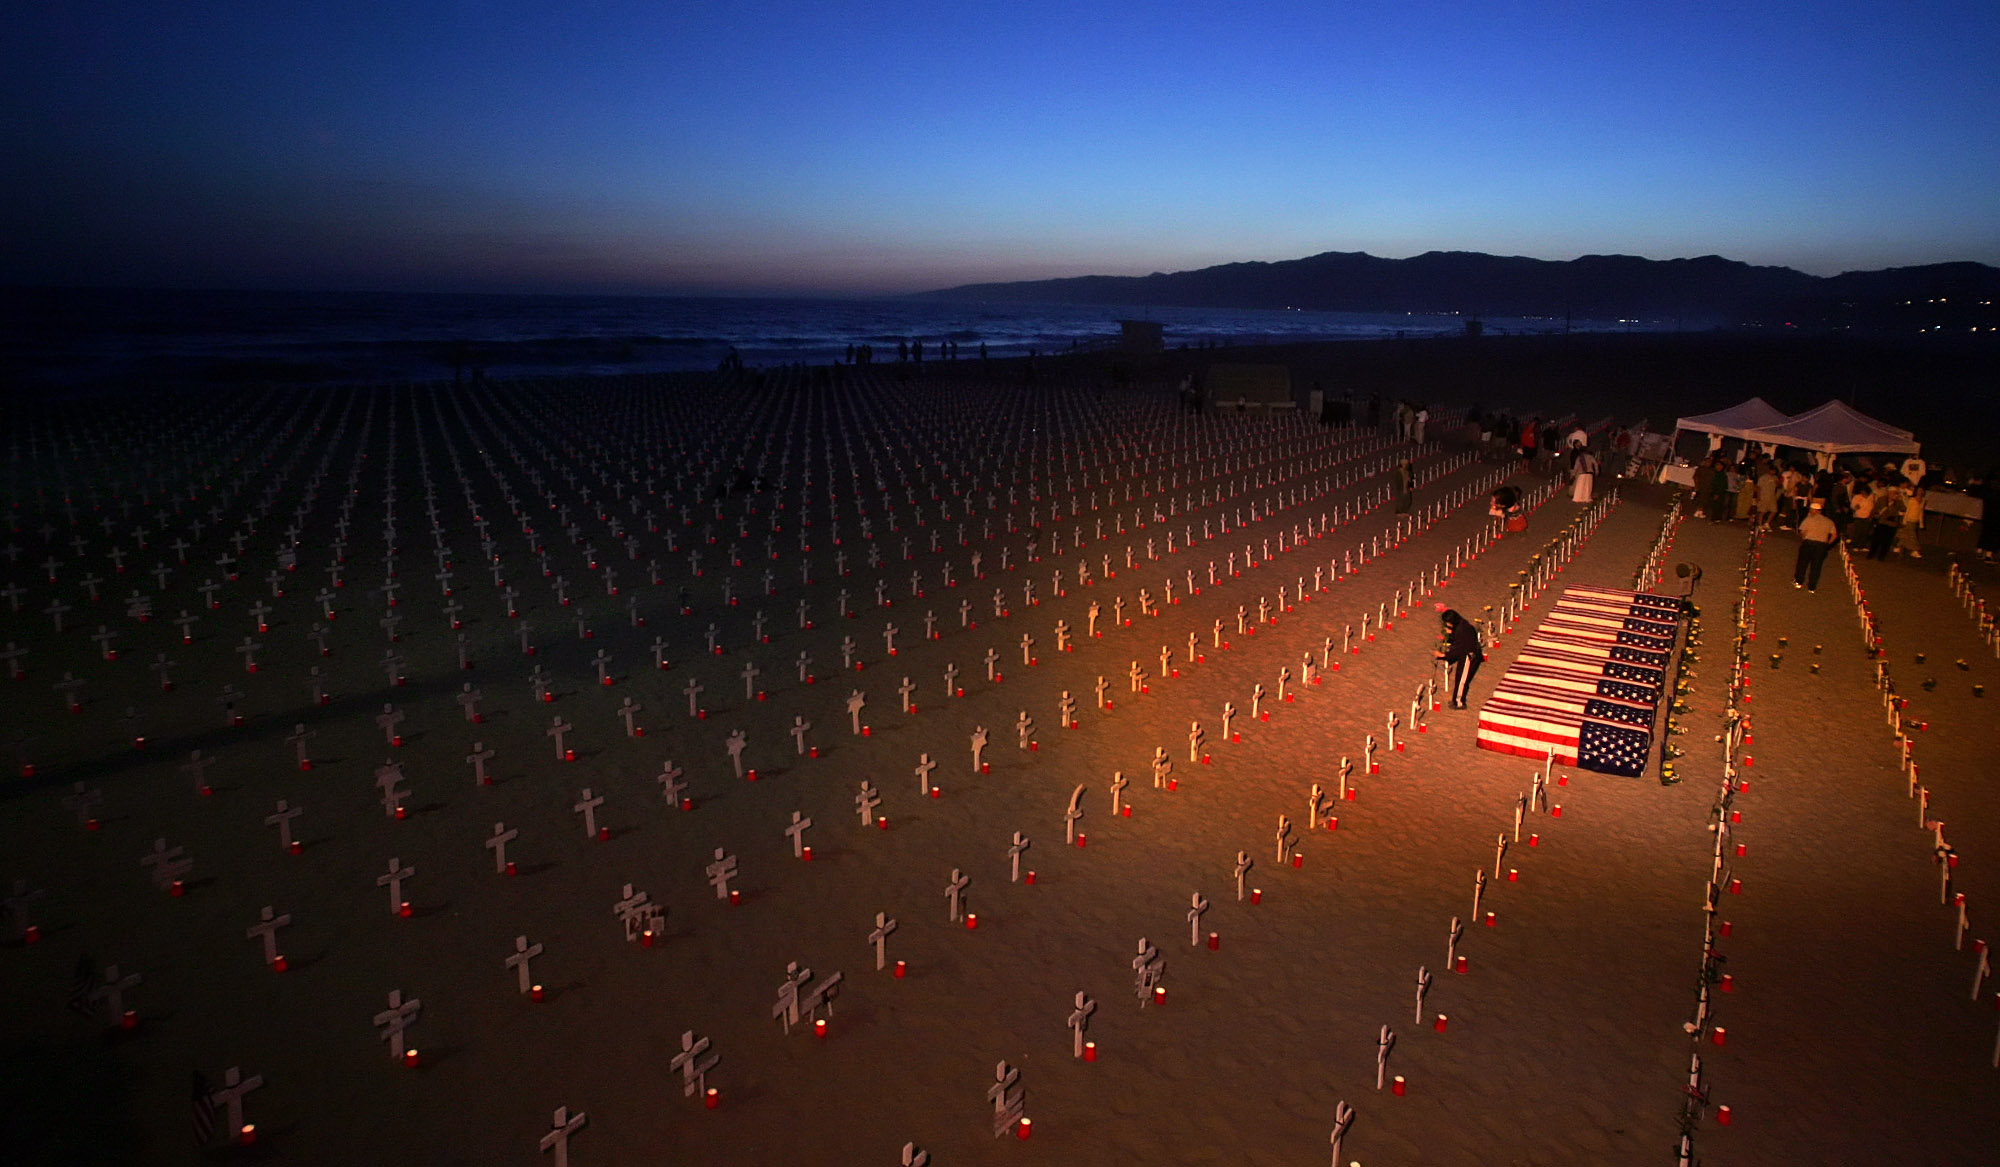 A volunteer puts flowers next to a cross at the Arlington West Iraq war memorial display on the beach next to the Santa Monica Pier in Santa Monica, Calif.